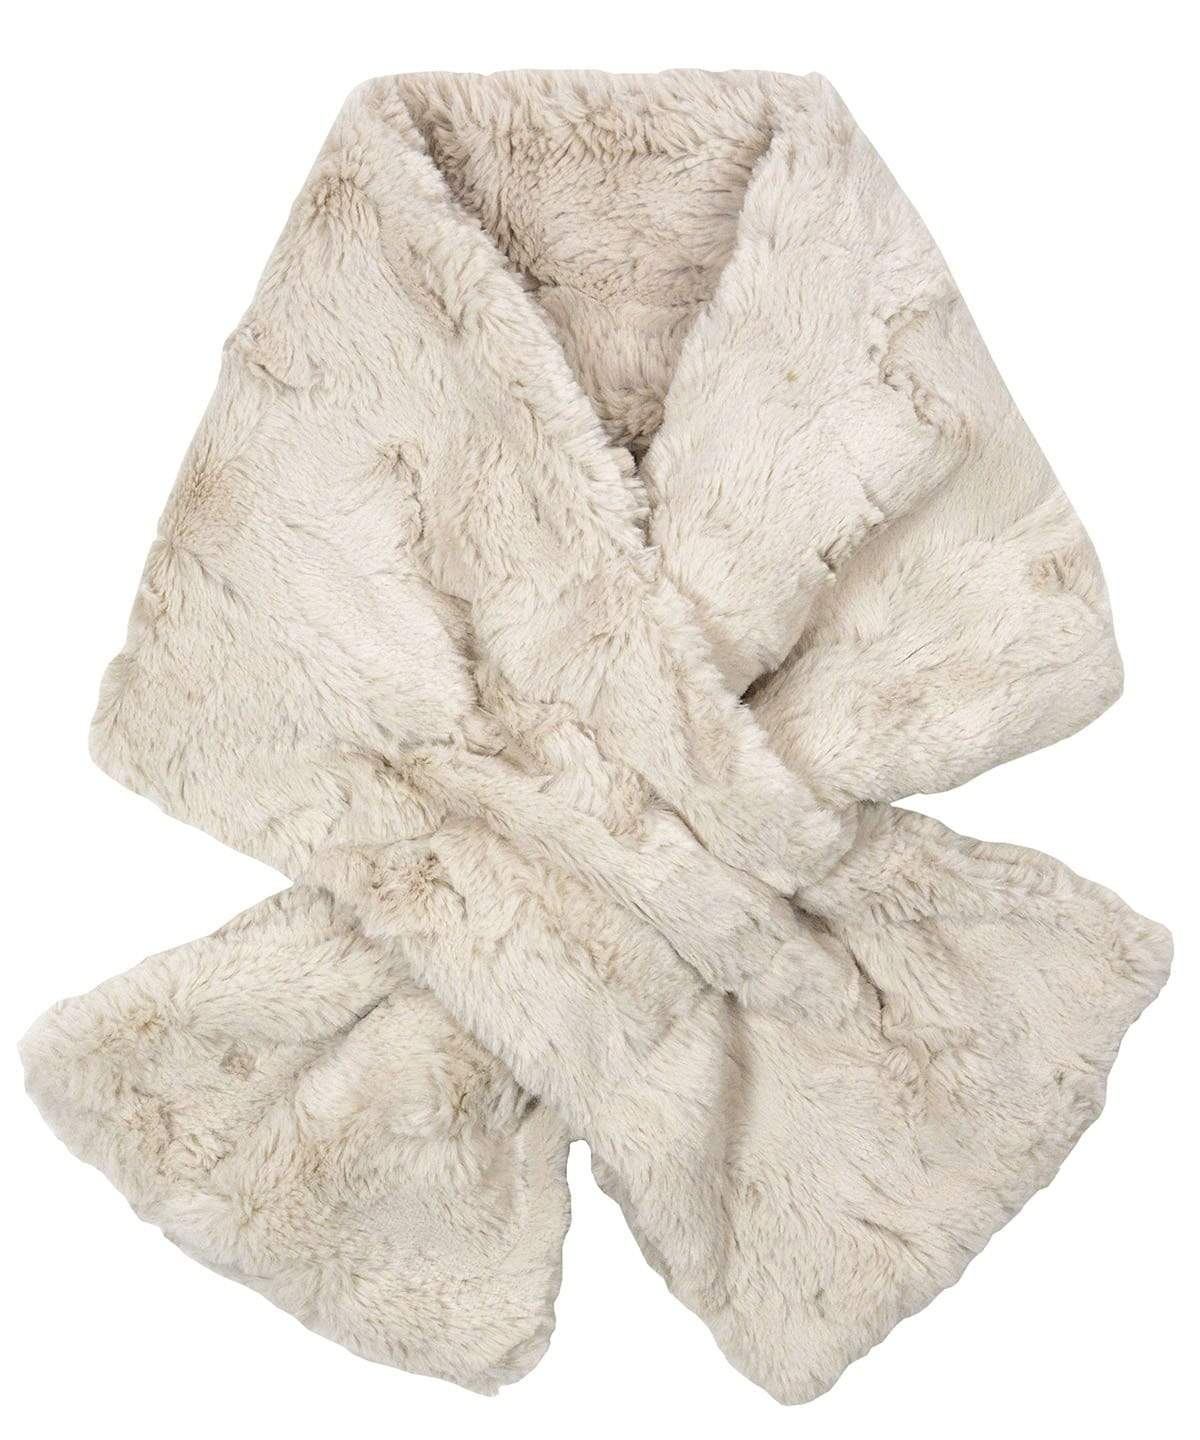 Pull-Thru Scarf - Cuddly Faux Fur in Sand